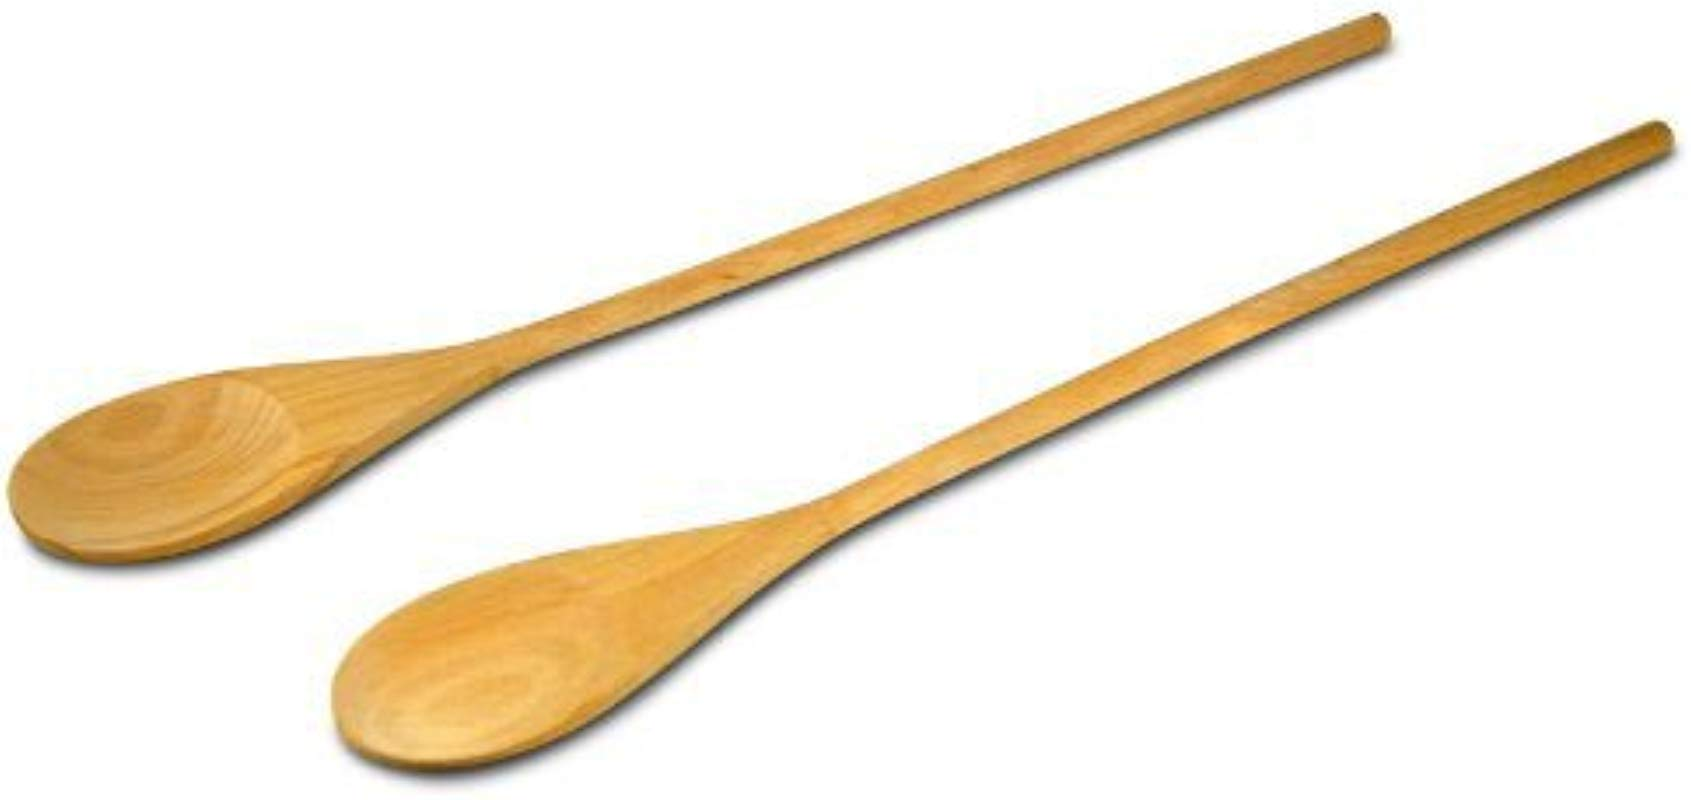 18 Inch Long Handle Wooden Cooking Mixing Spoon Birch Wood Set Of 2